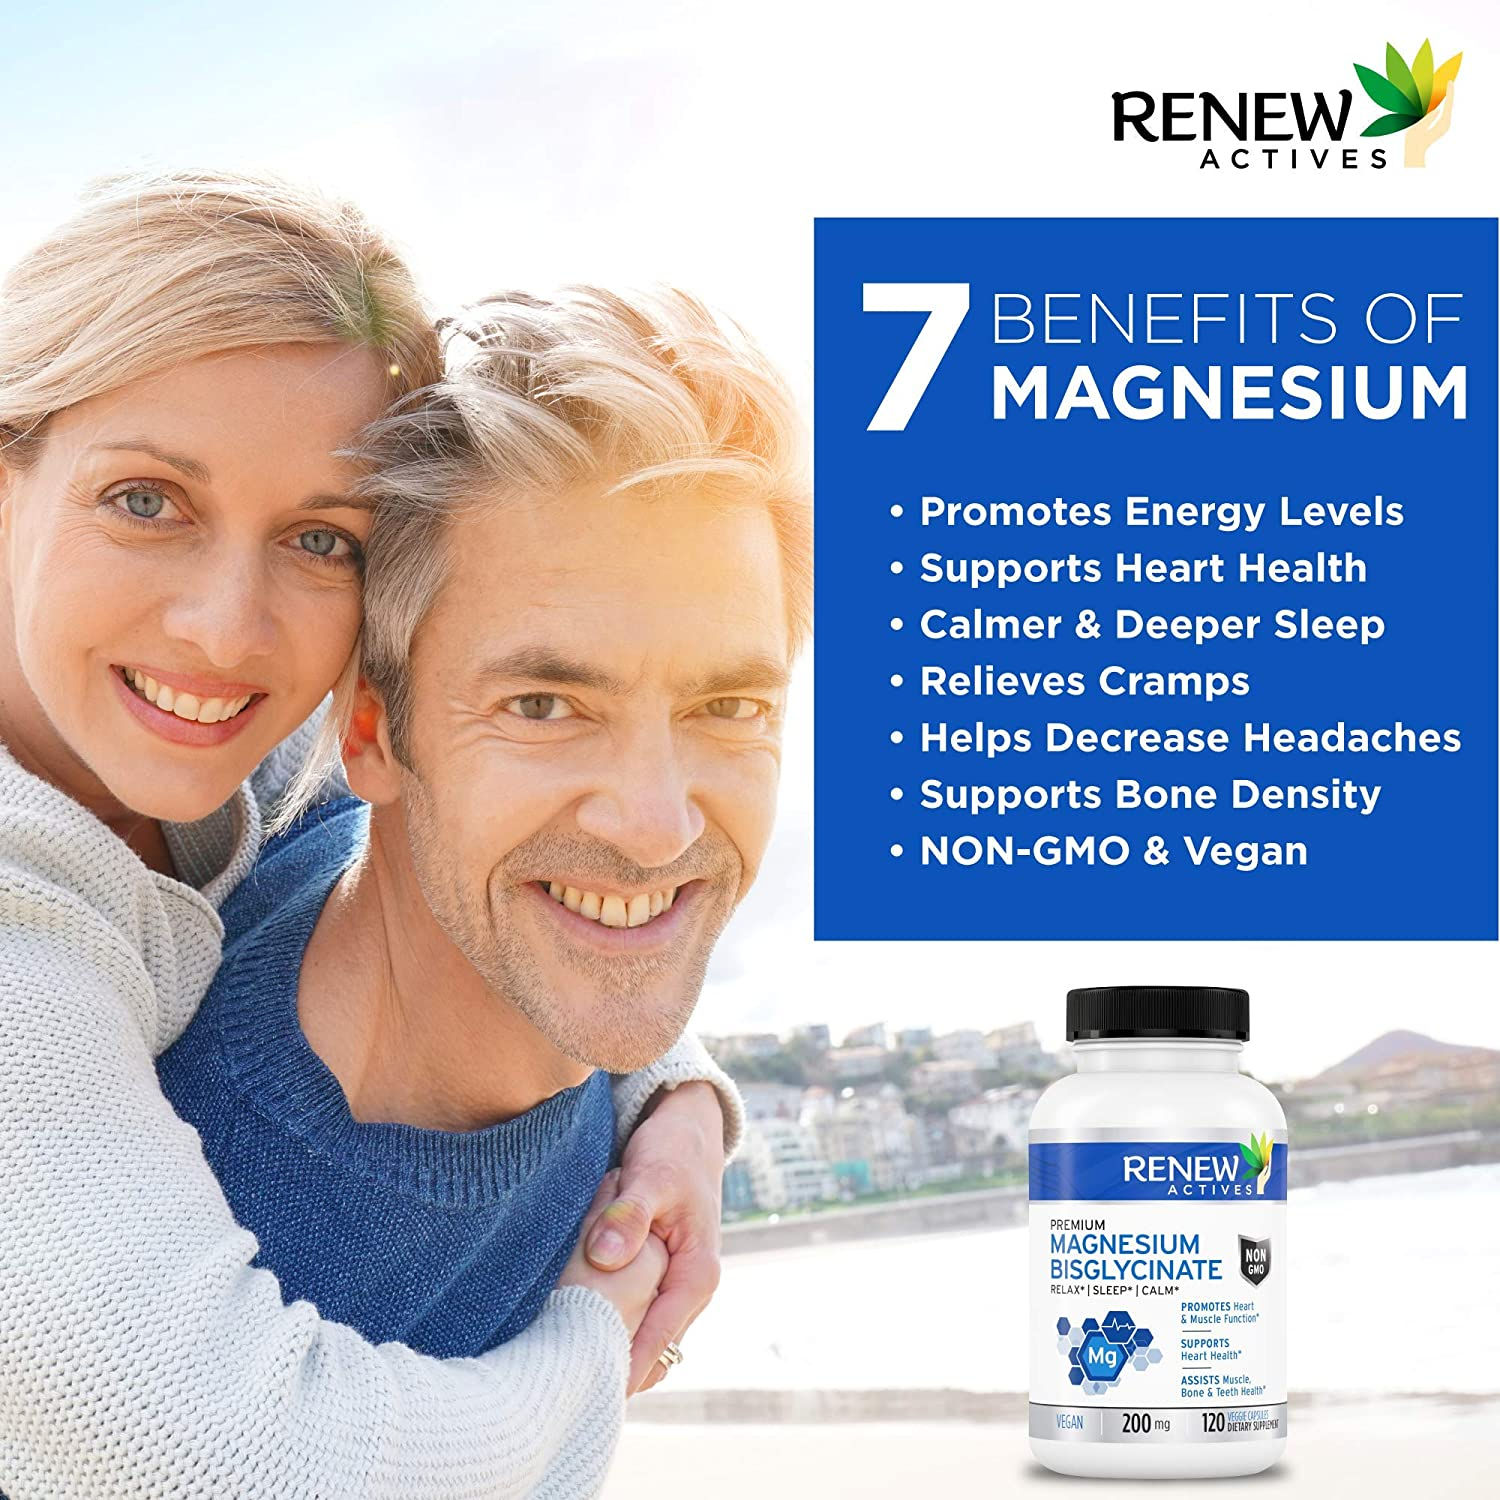 Renew Actives Magnesium Glycinate Supplement 200 mg